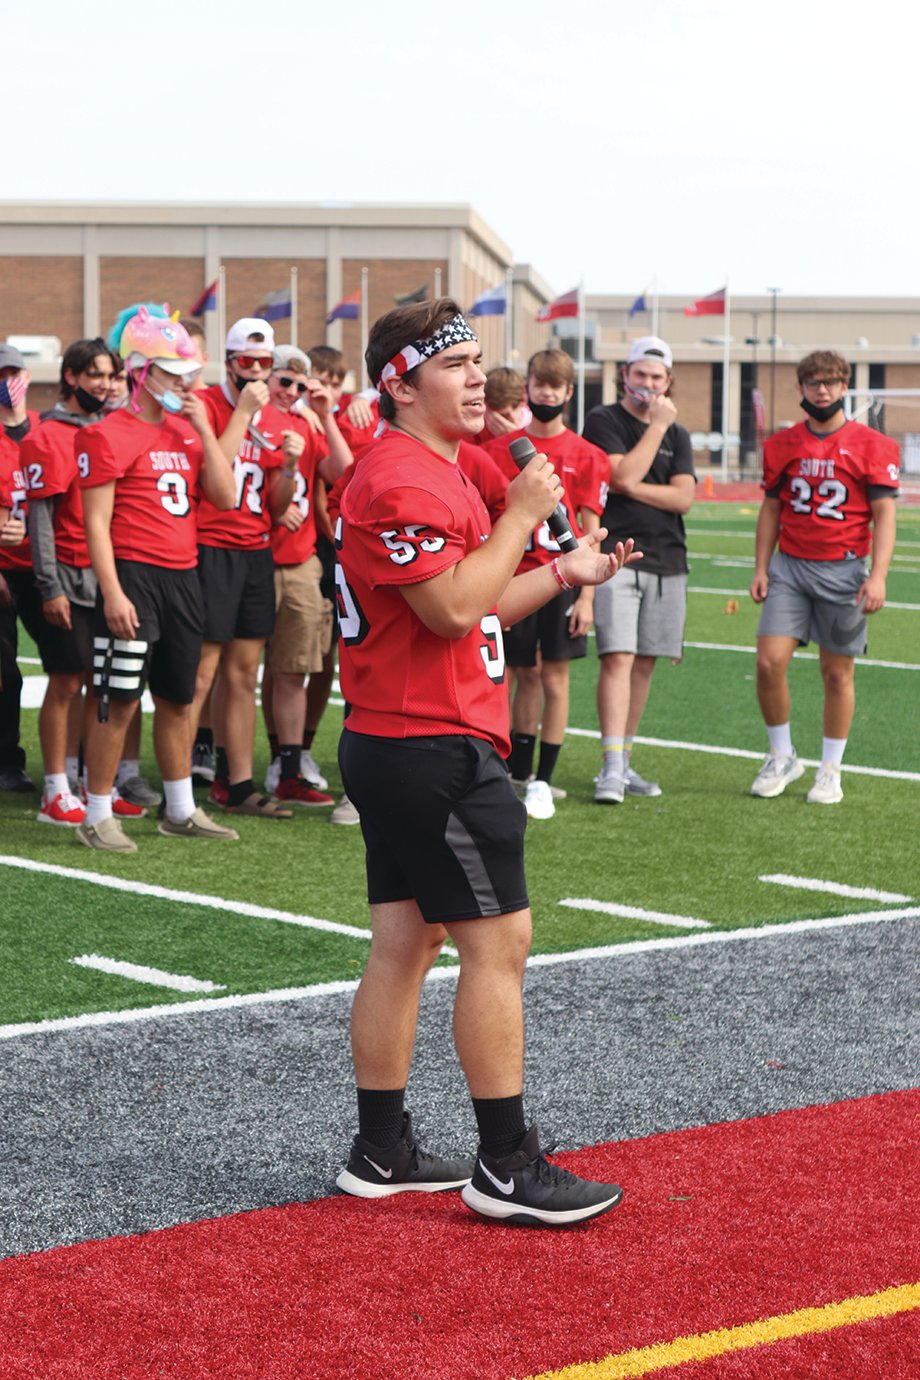 Southmont senior linebacker Riley Woodall provides a few words of inspiration ahead of Friday's Homecoming matchup with Lebanon.